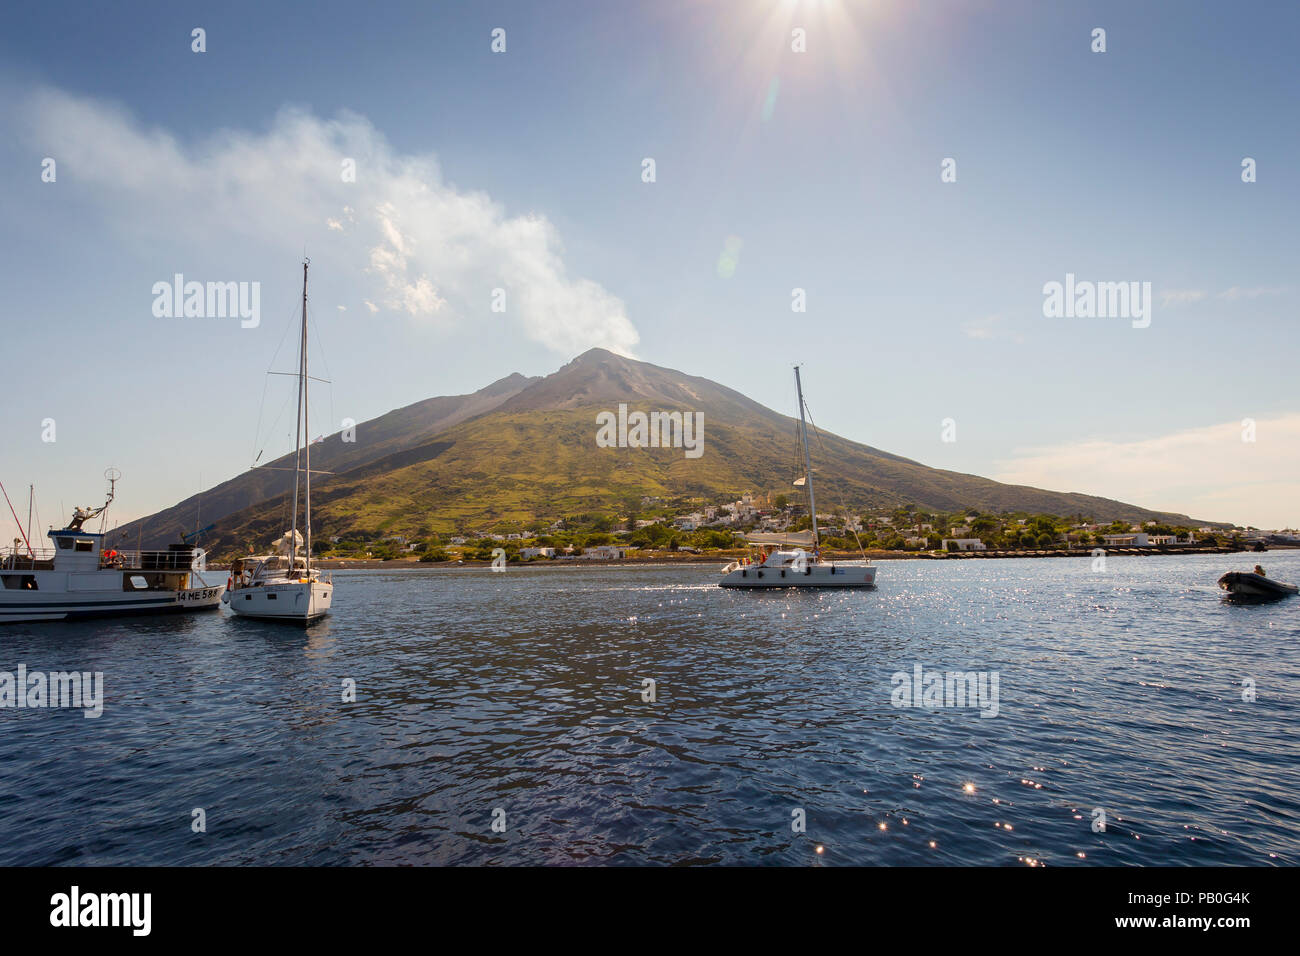 Volcanic island of Stromboli, Aeolian Islands, Sicily. - Stock Image